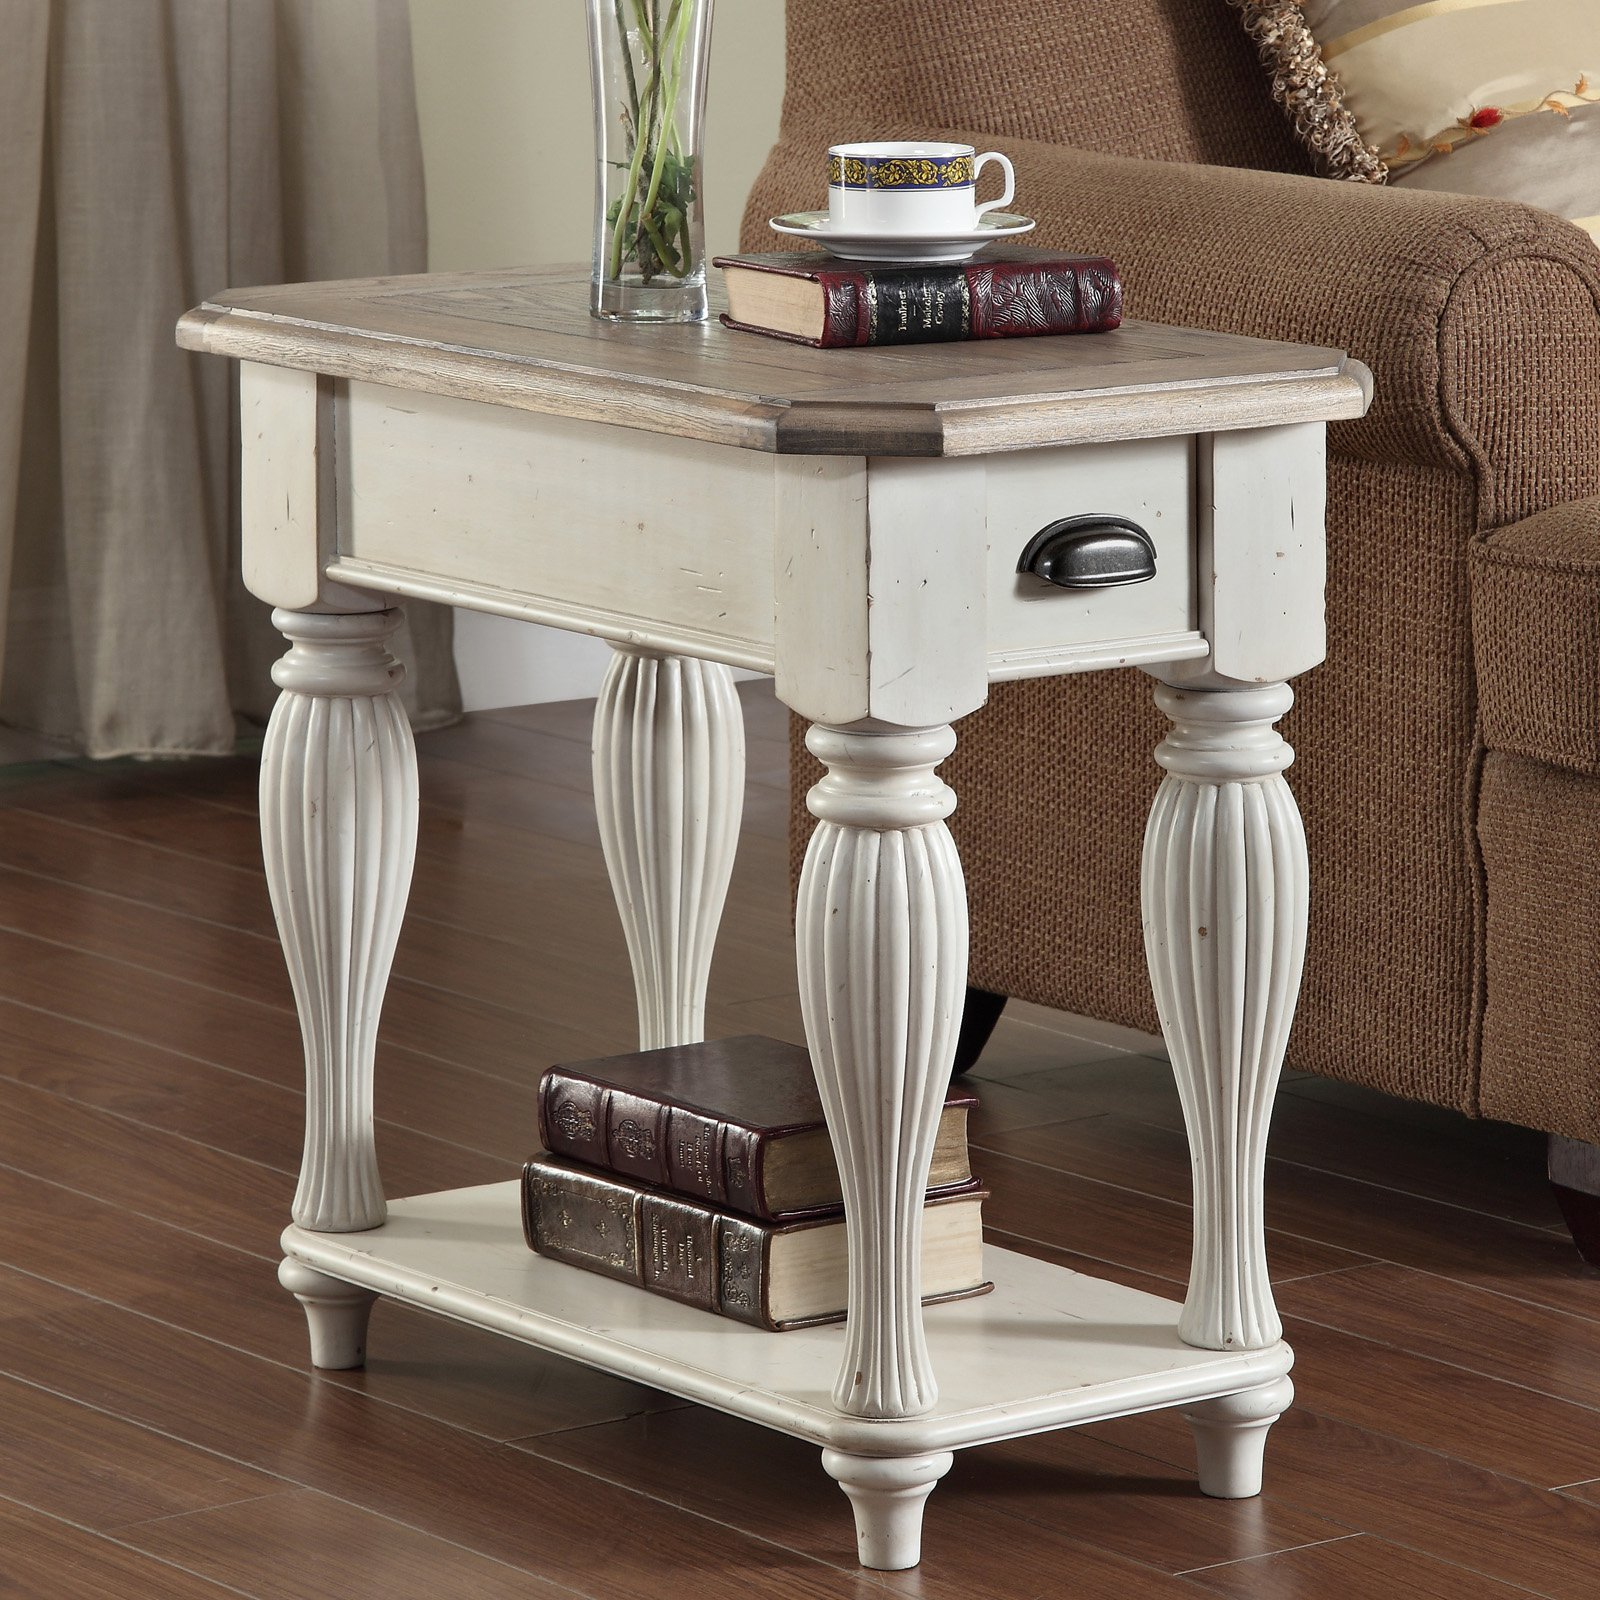 Riverside Coventry Two Tone Chair Side Table